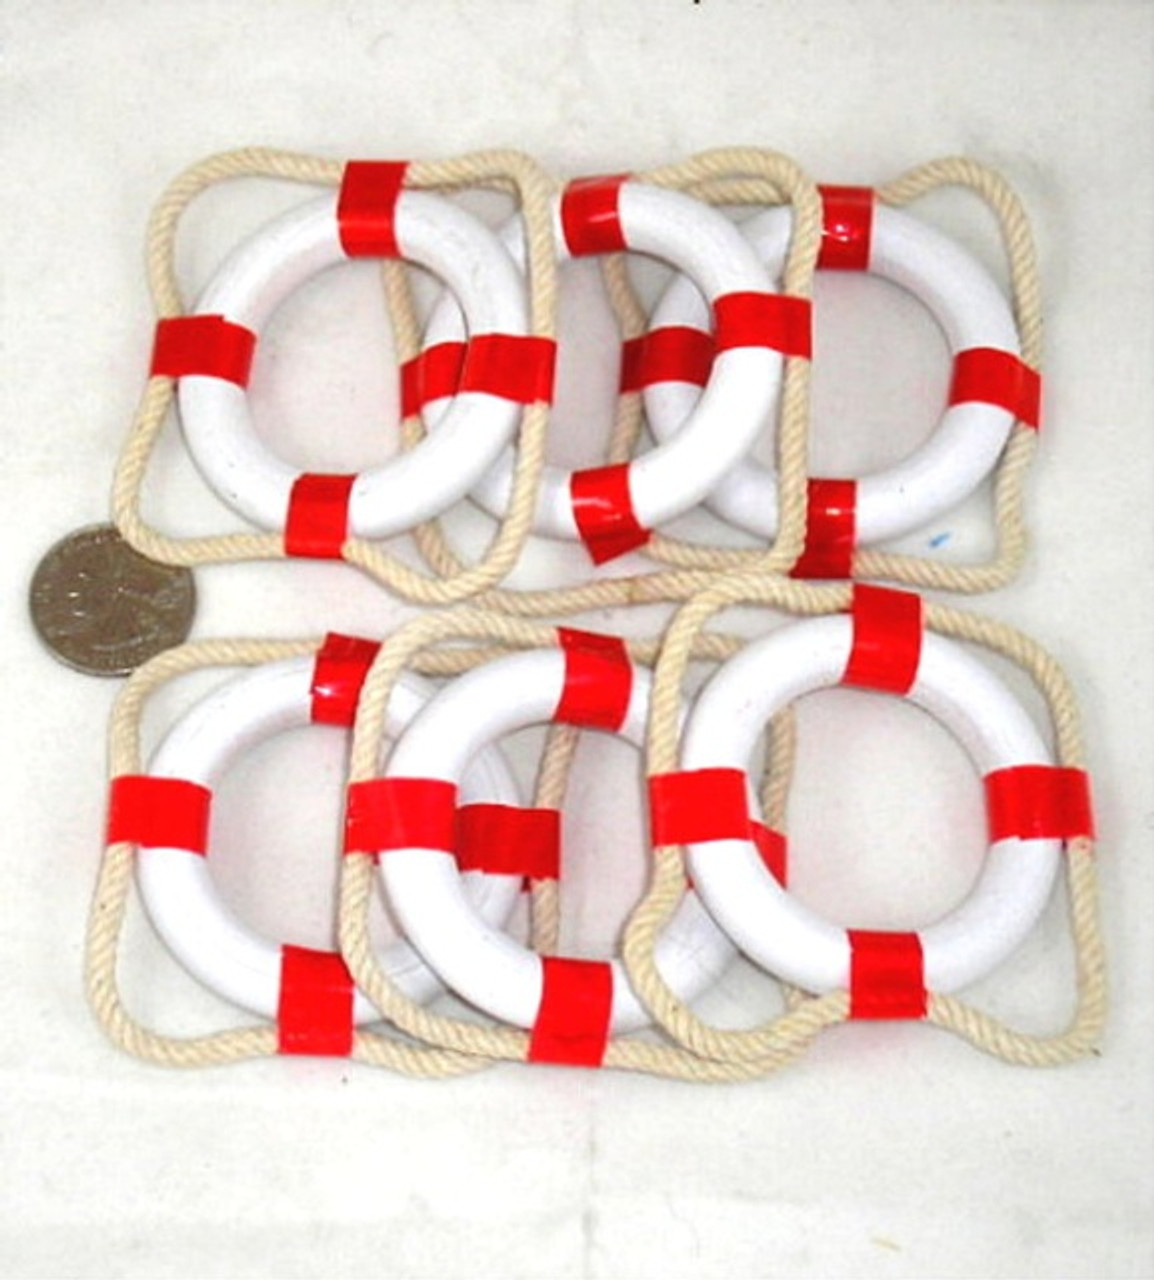 Red Napkin Rings Life Ring Preservers Buoys